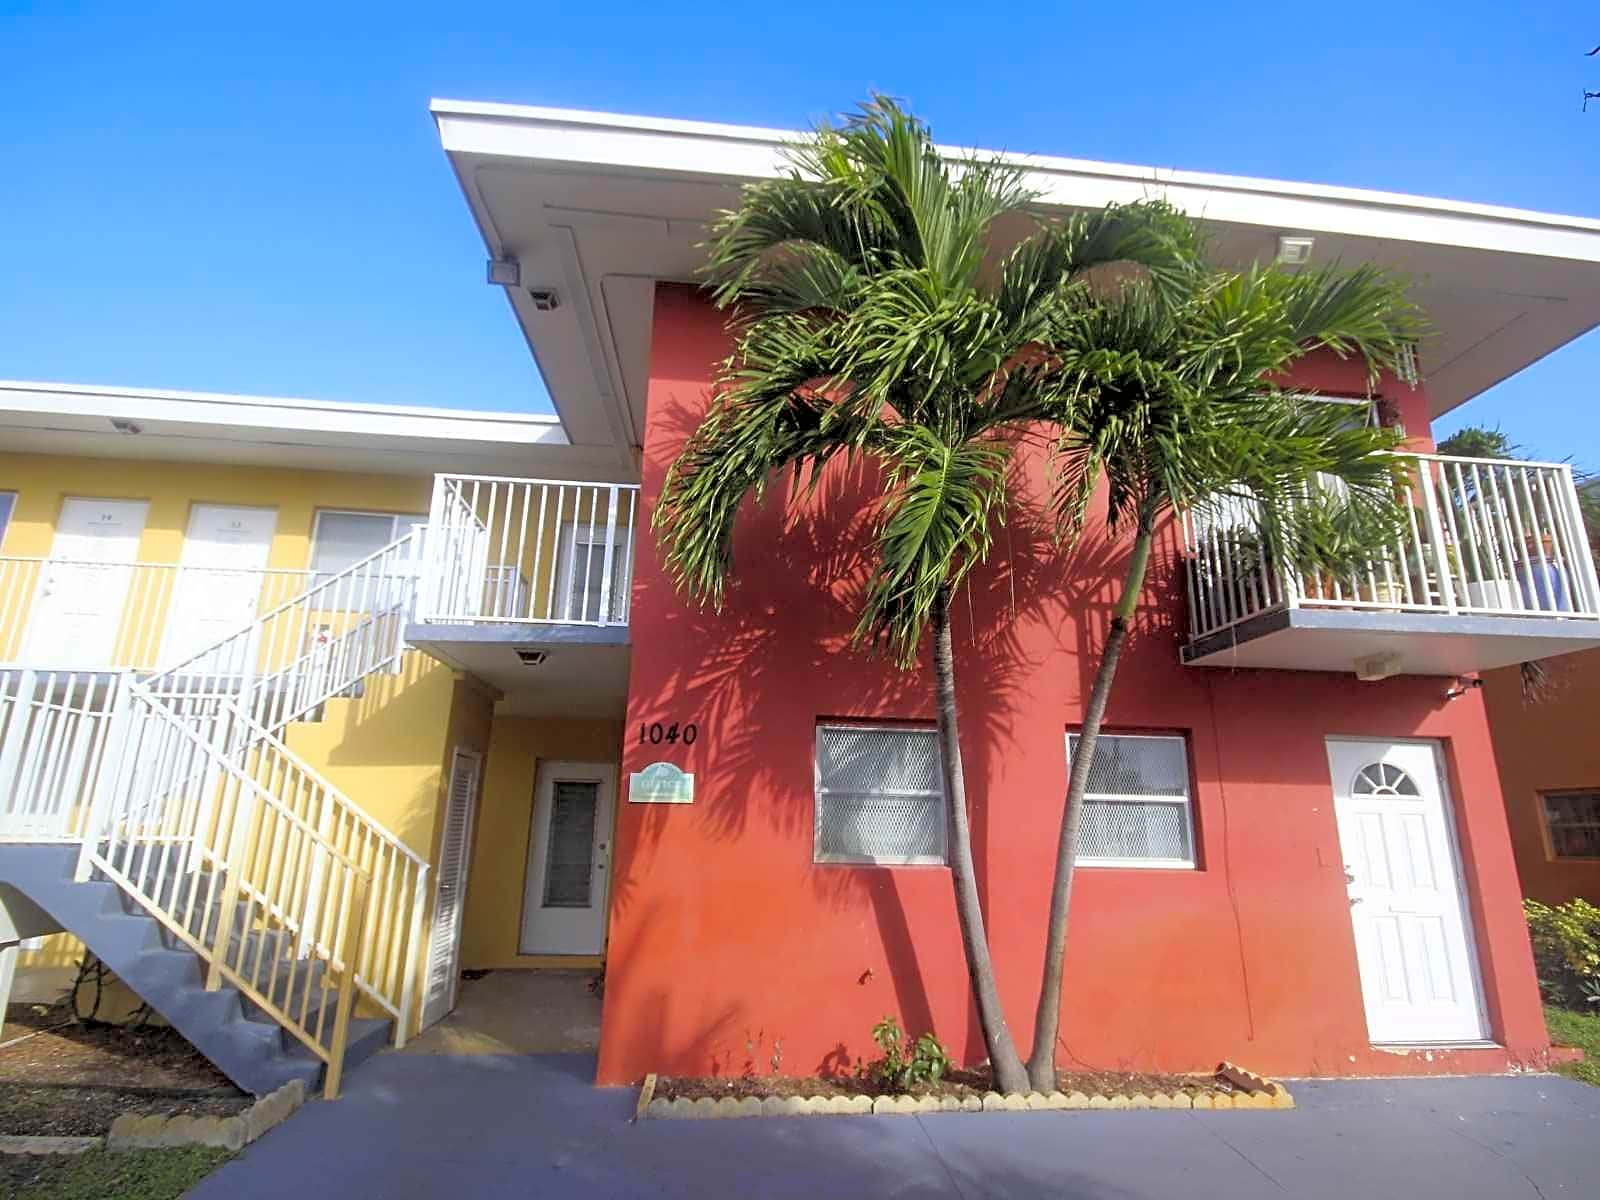 Photo: Fort Lauderdale Apartment for Rent - $710.00 / month; Studio & 1 Ba